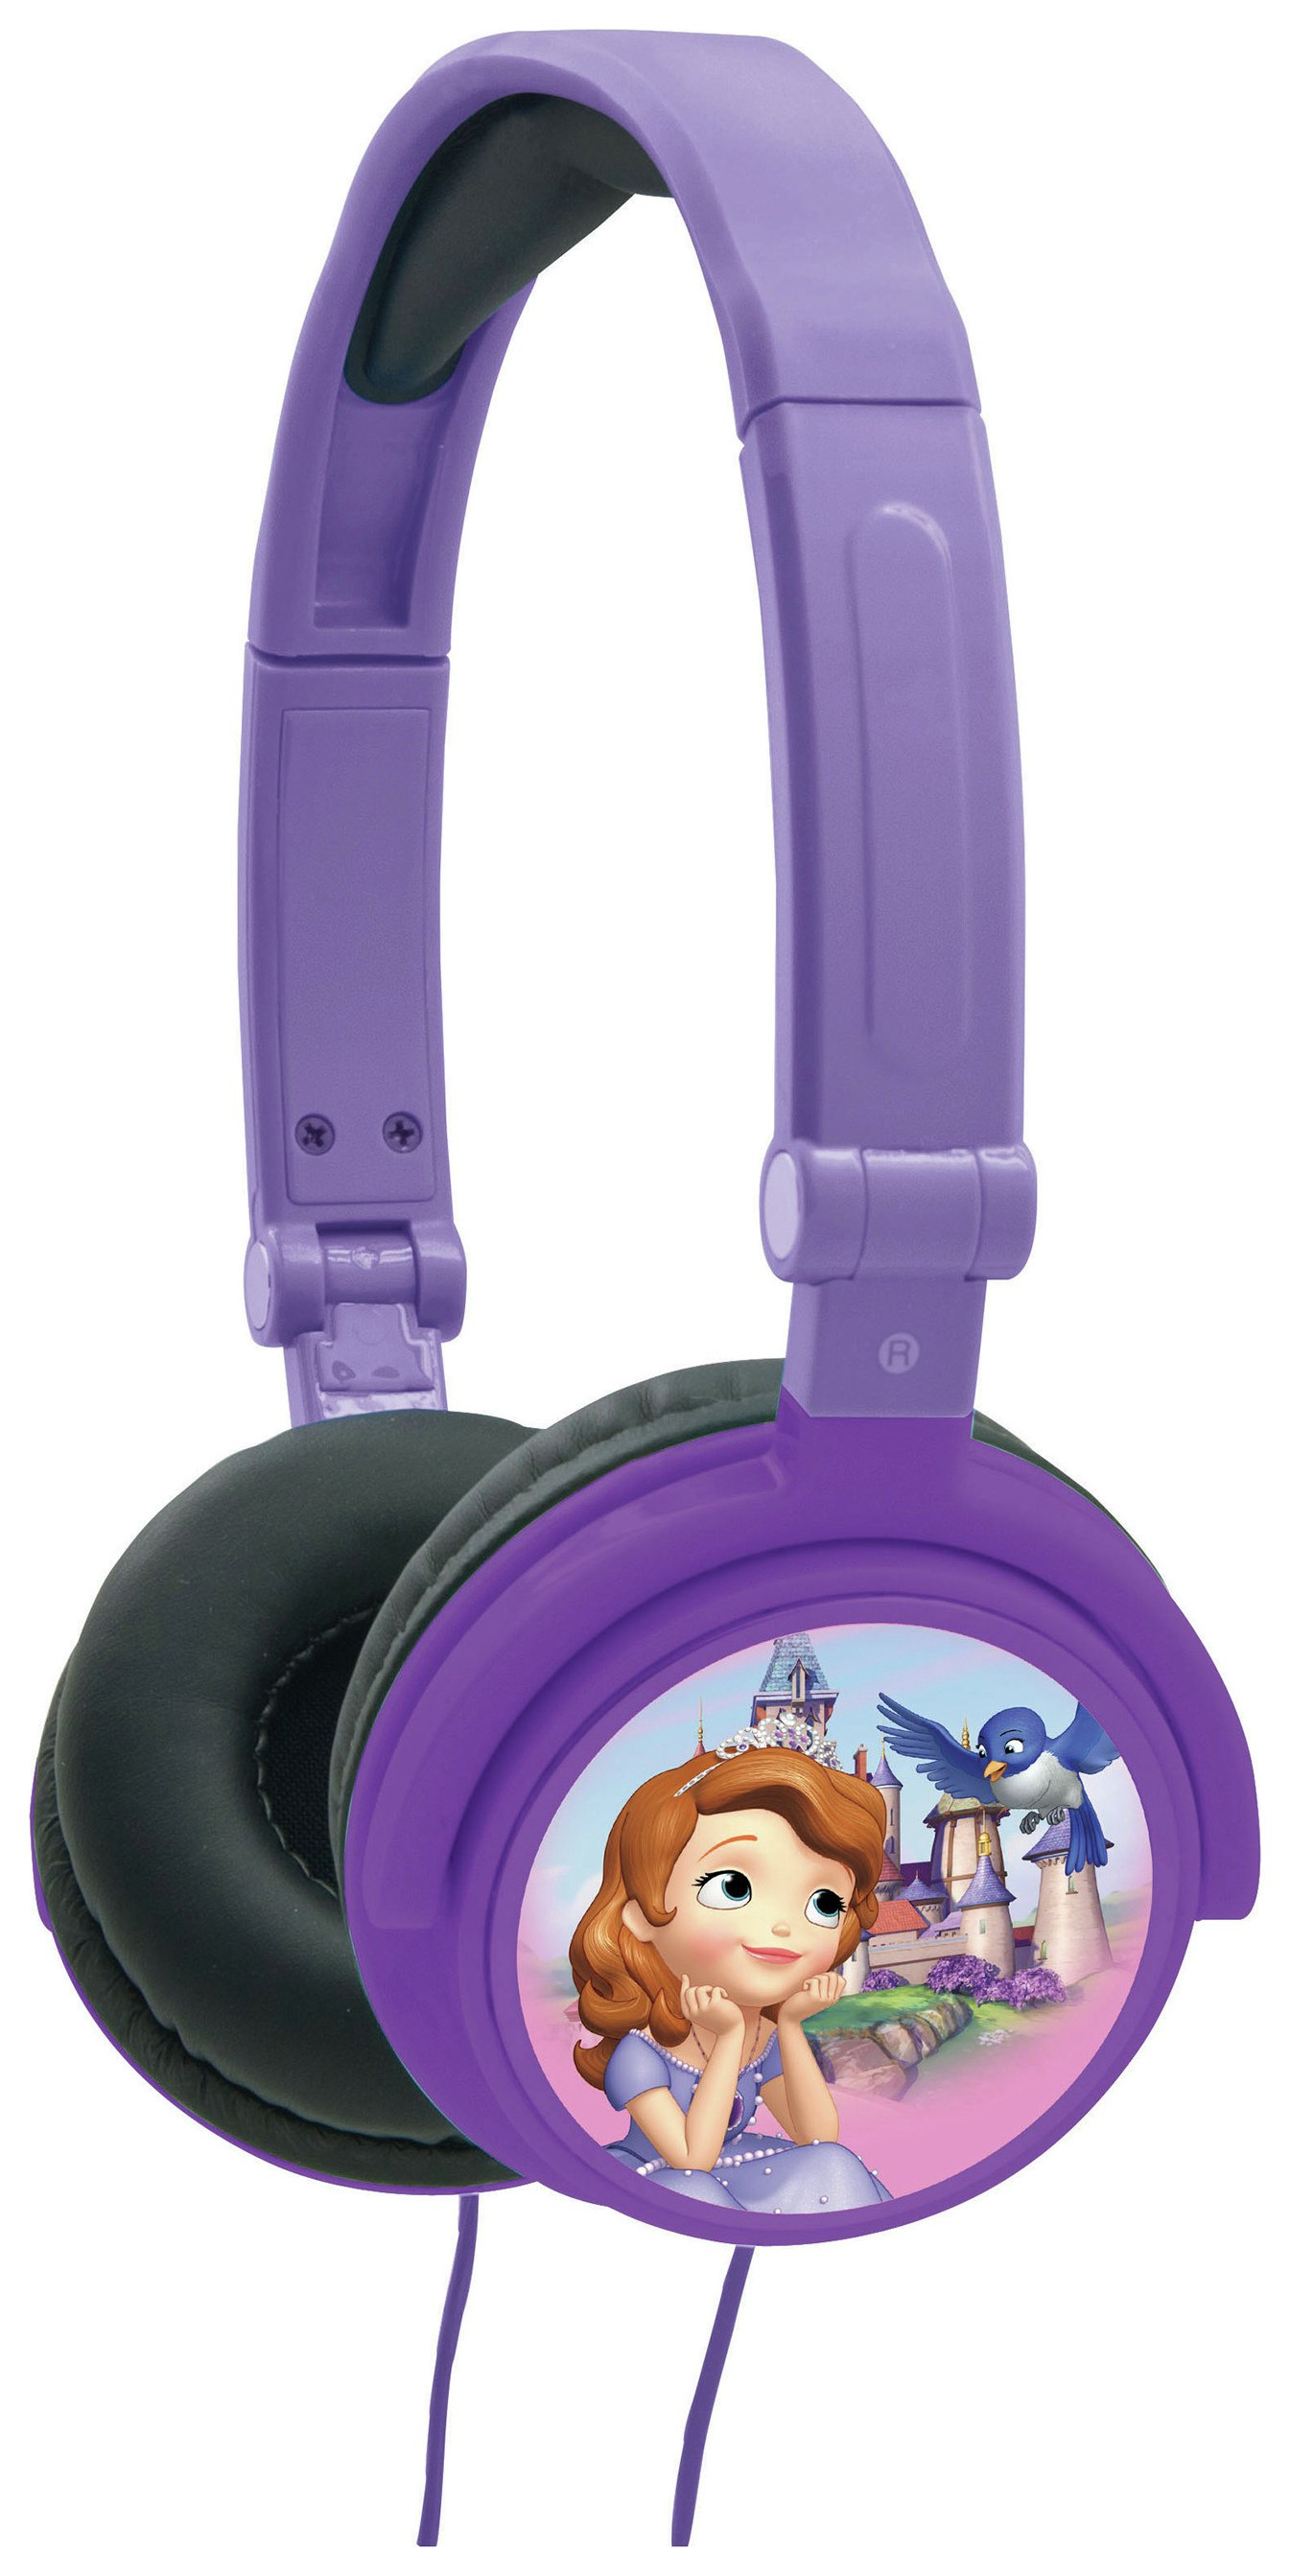 Image of Lexibook Sofia Headphone.